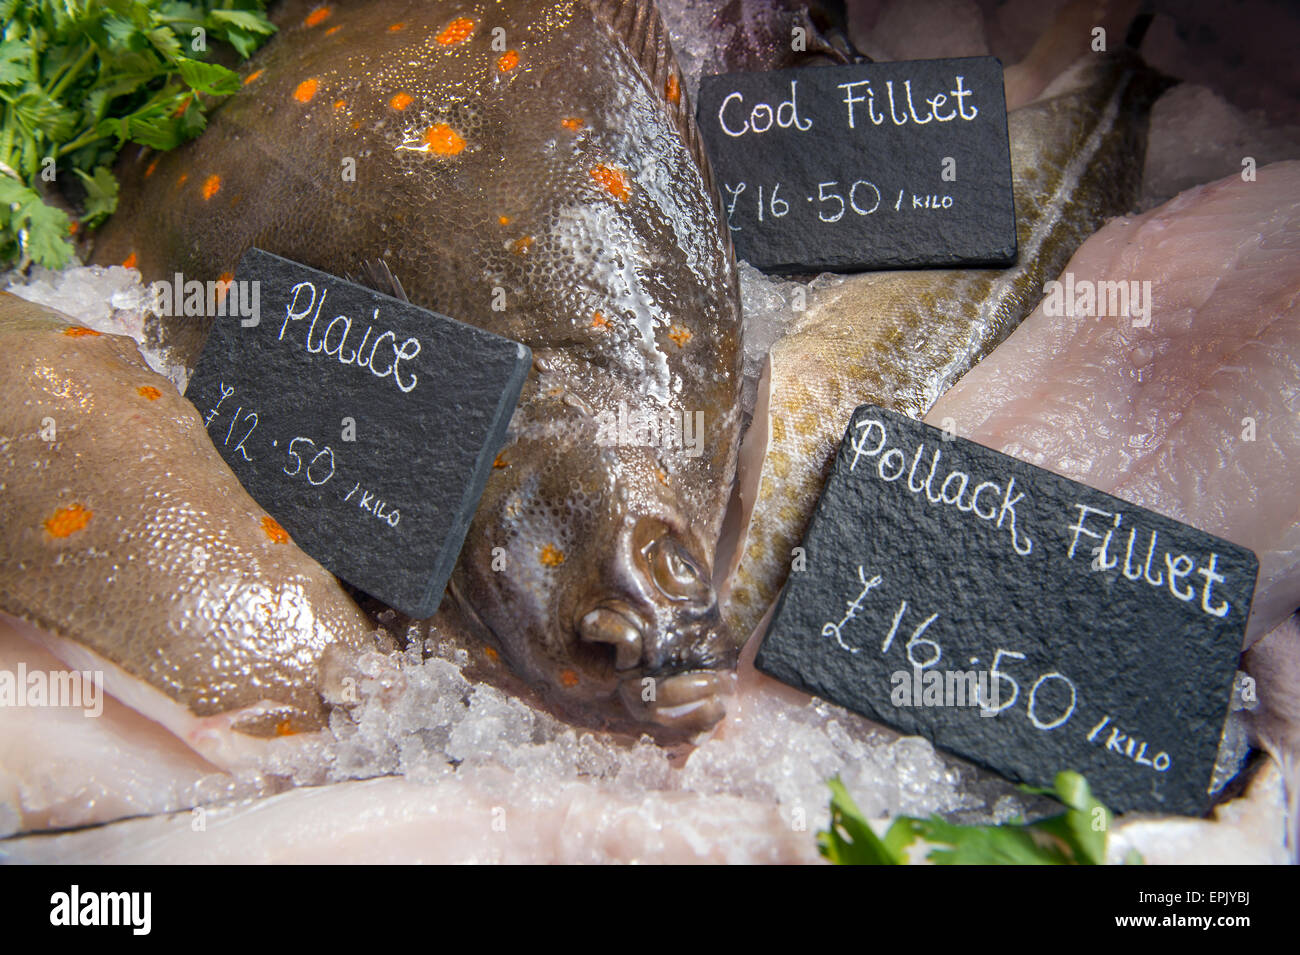 A selection of fresh fish including Plaice, Cod and Pollack in a fishmongers counter UK - Stock Image